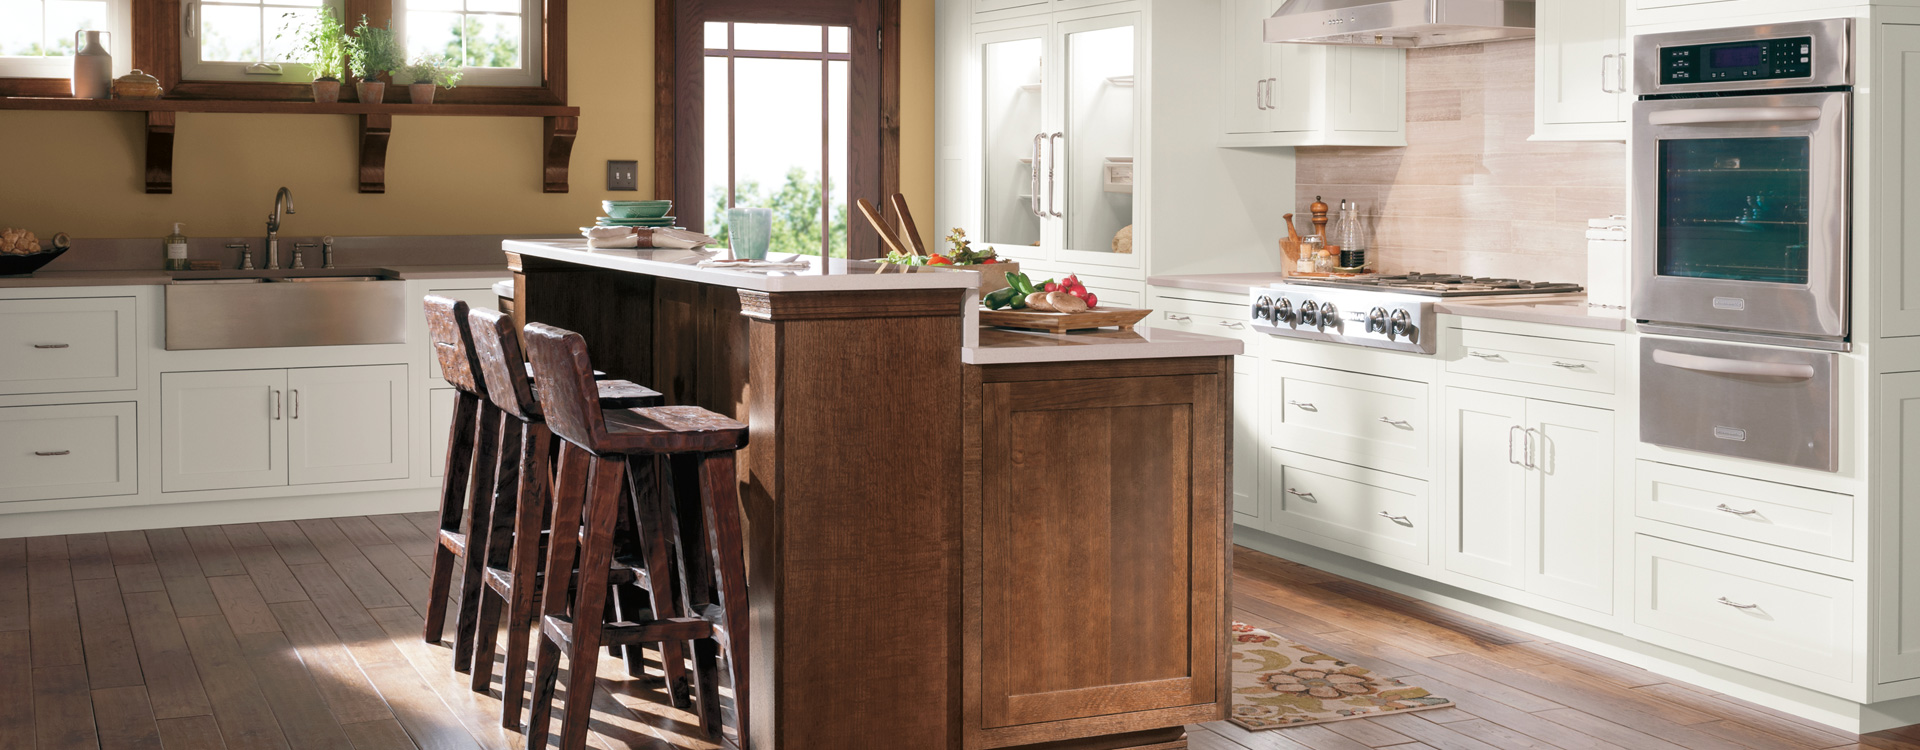 Kitchen Cabinetry Store